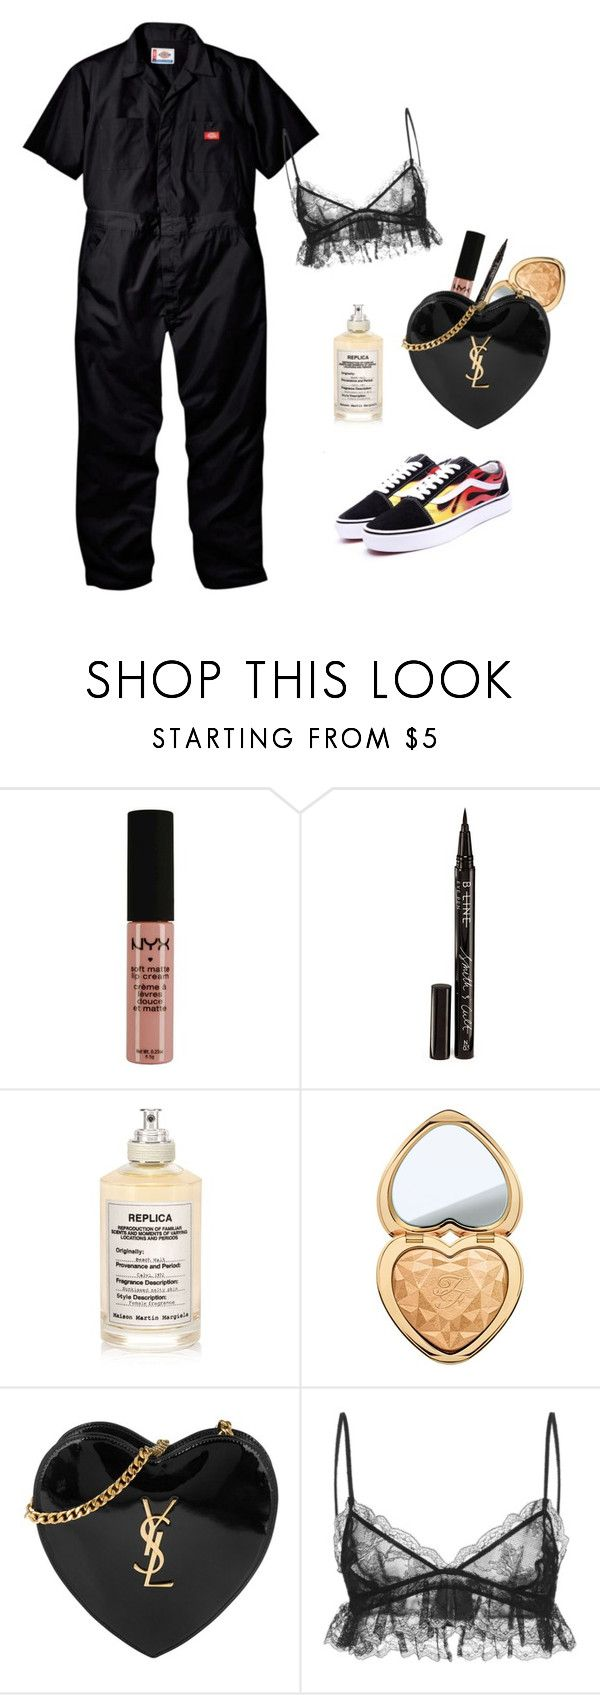 """Skepta : Banned from America Tour"" by eyelinerxbaddecisions ❤ liked on Polyvore featuring NYX, Smith & Cult, Maison Margiela, Too Faced Cosmetics, Yves Saint Laurent and Giambattista Valli"